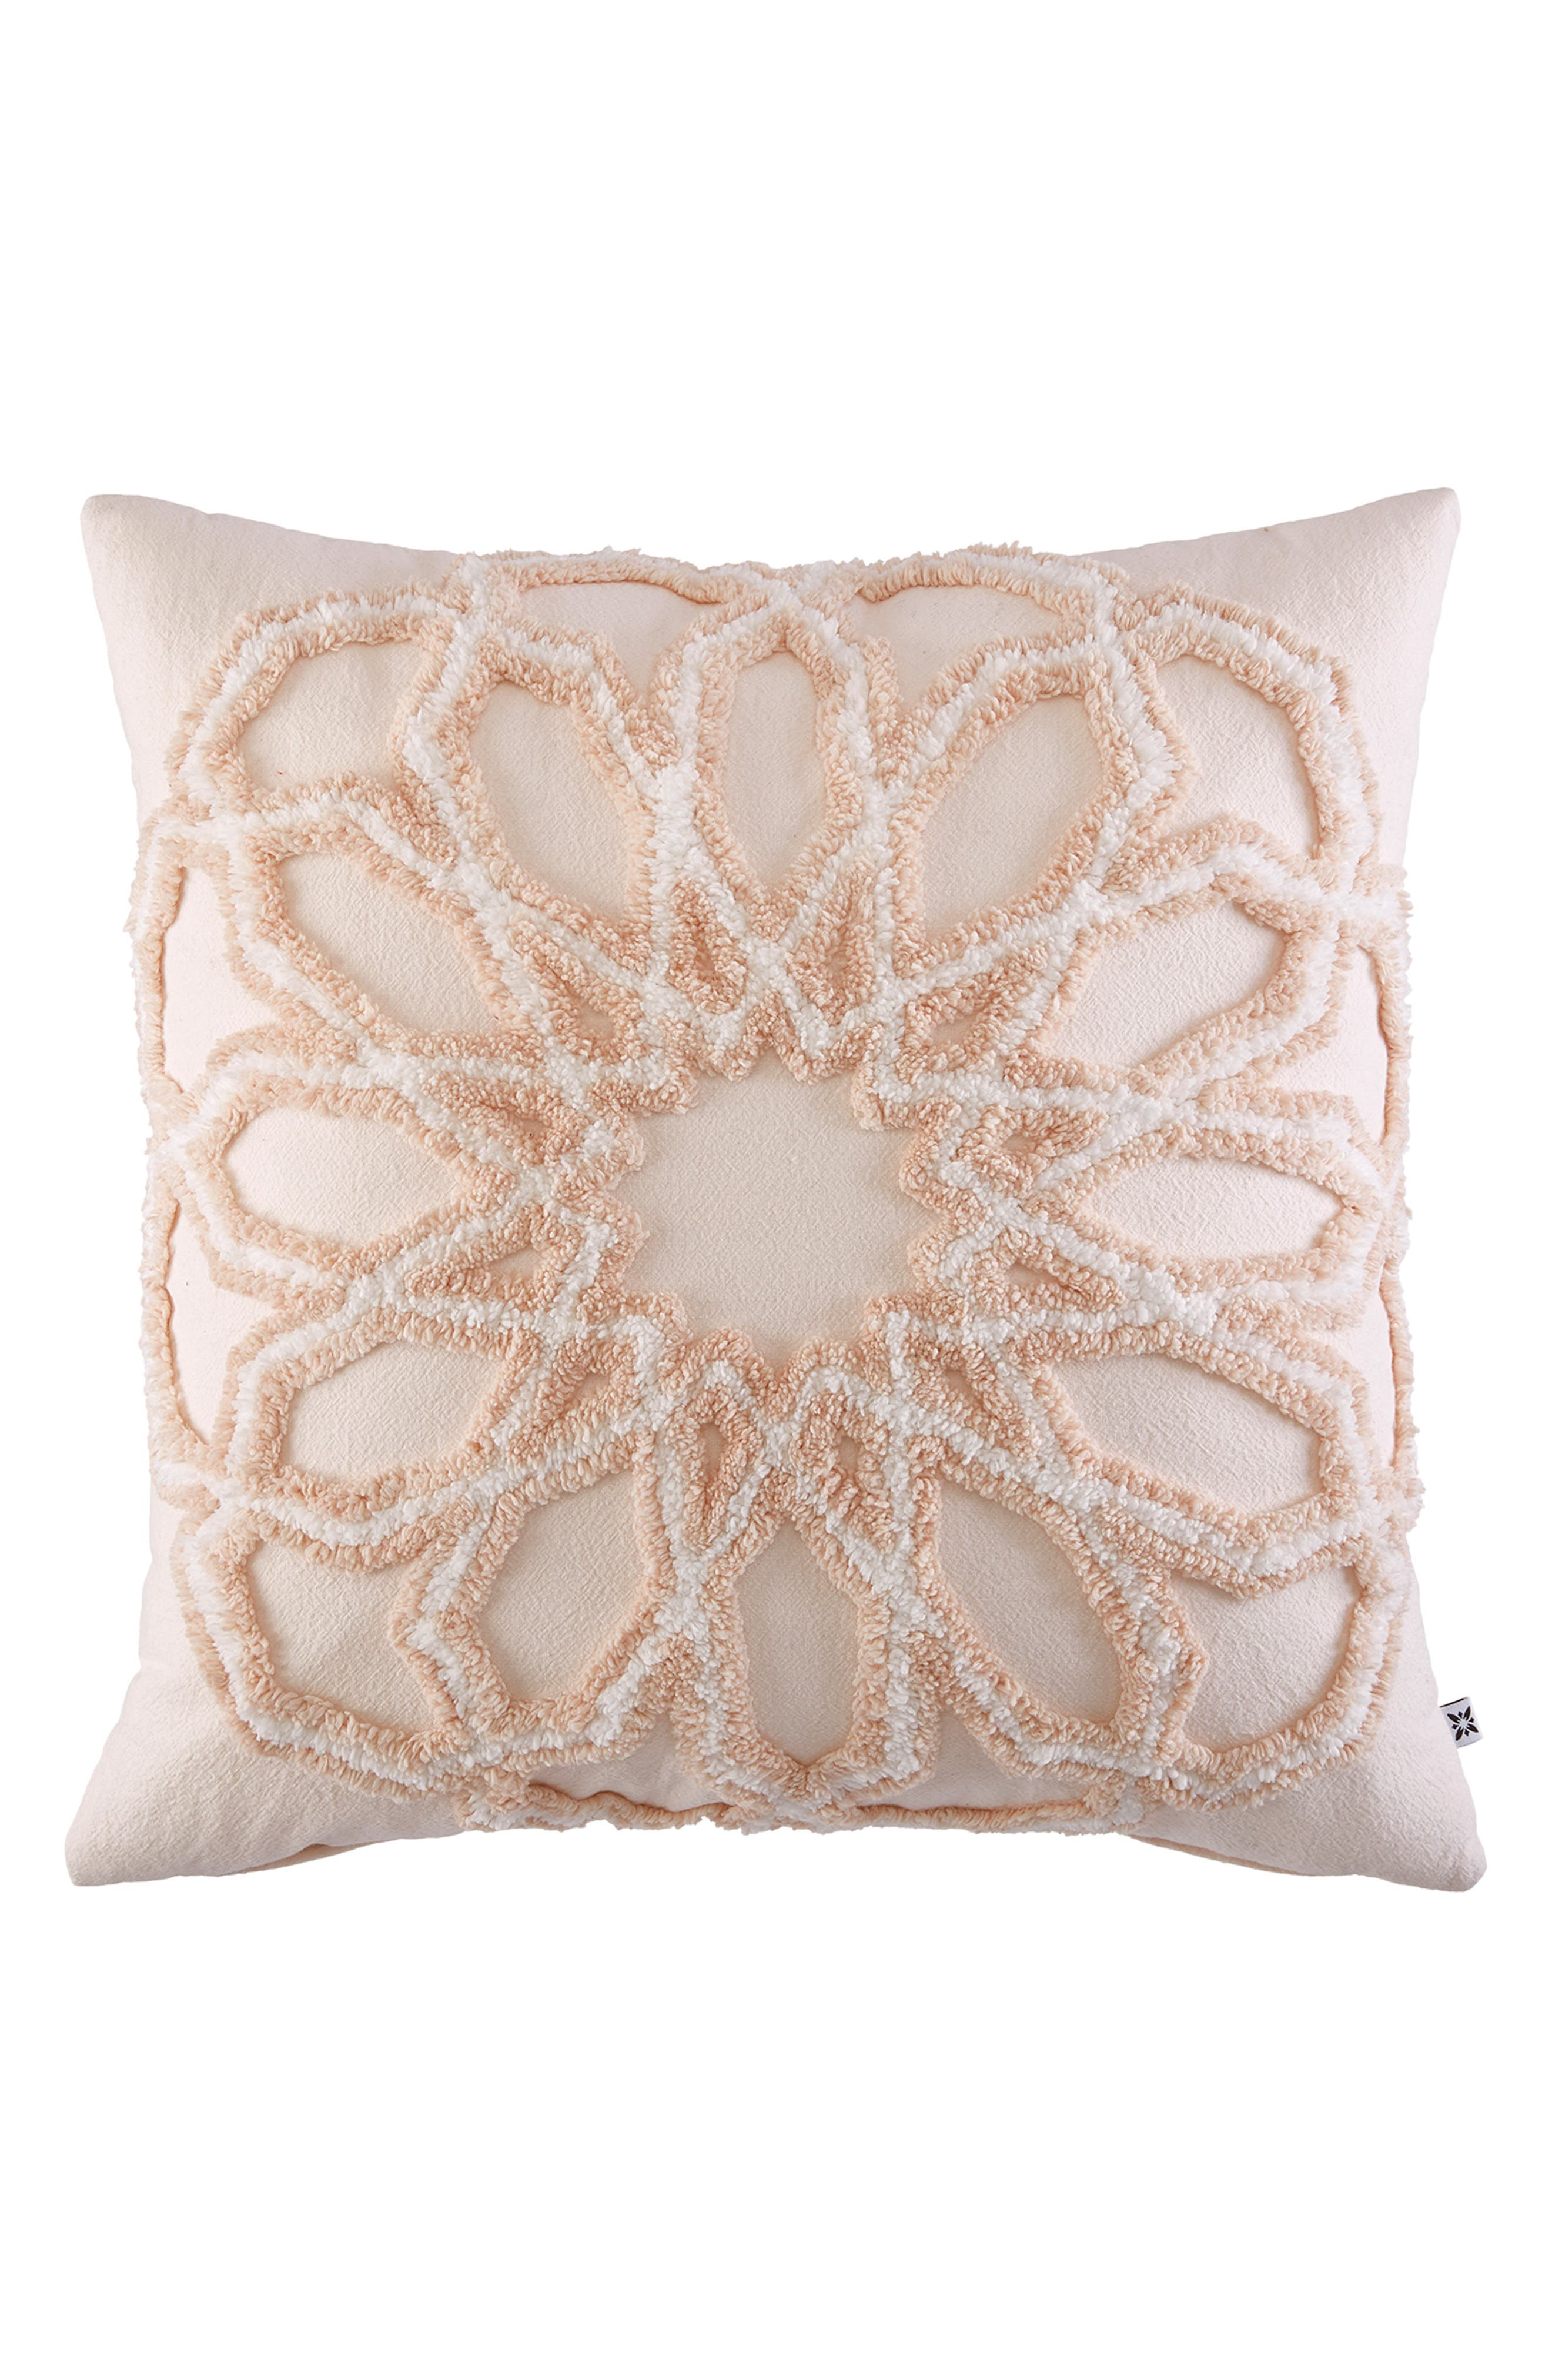 Marrakesh Tufted Accent Pillow,                         Main,                         color, Pink